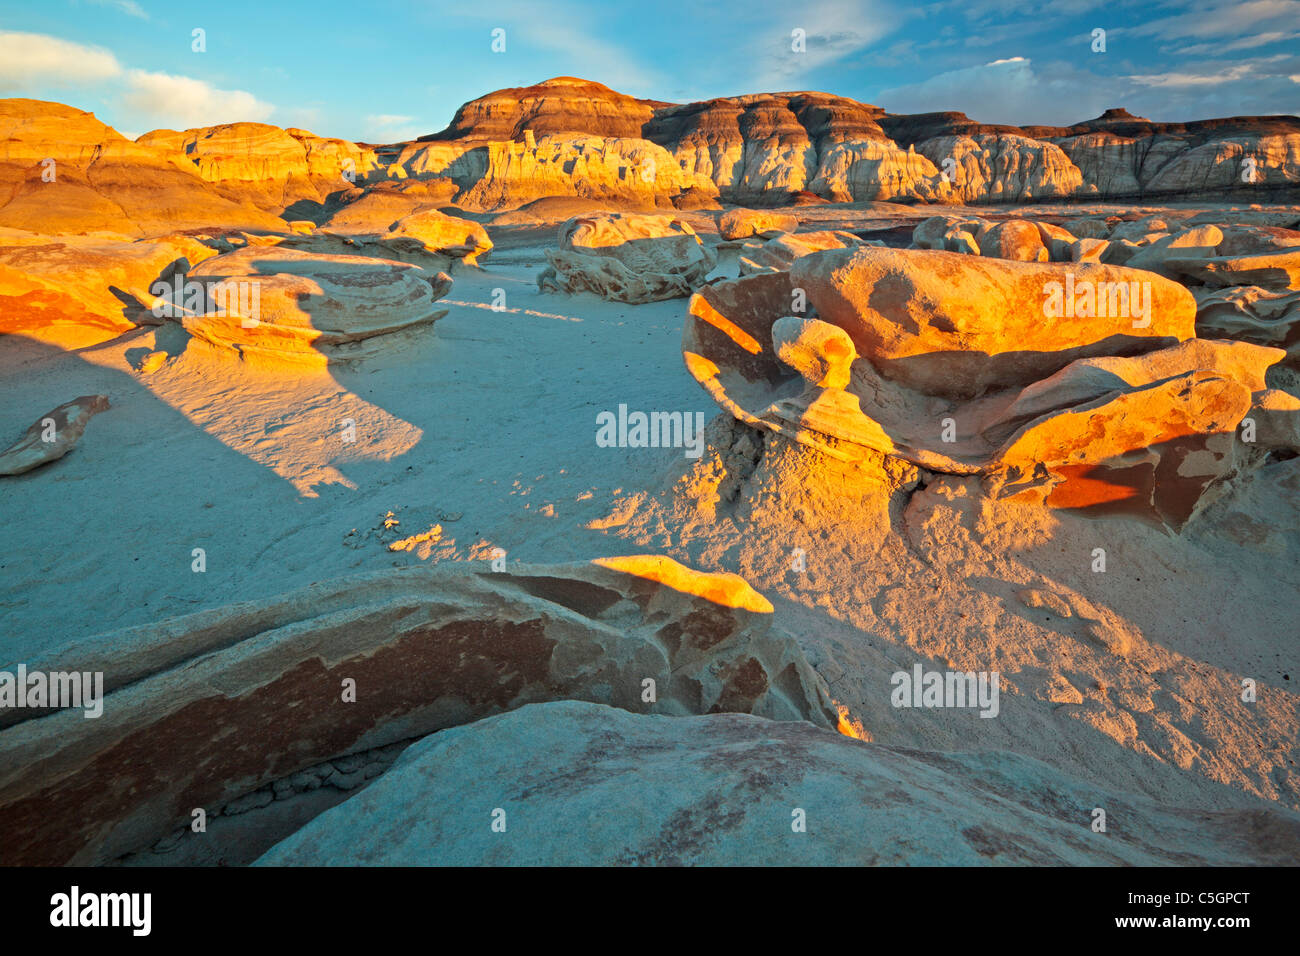 Bisti & De Na Zin Wilderness, New Mexico, USA - Stock Image